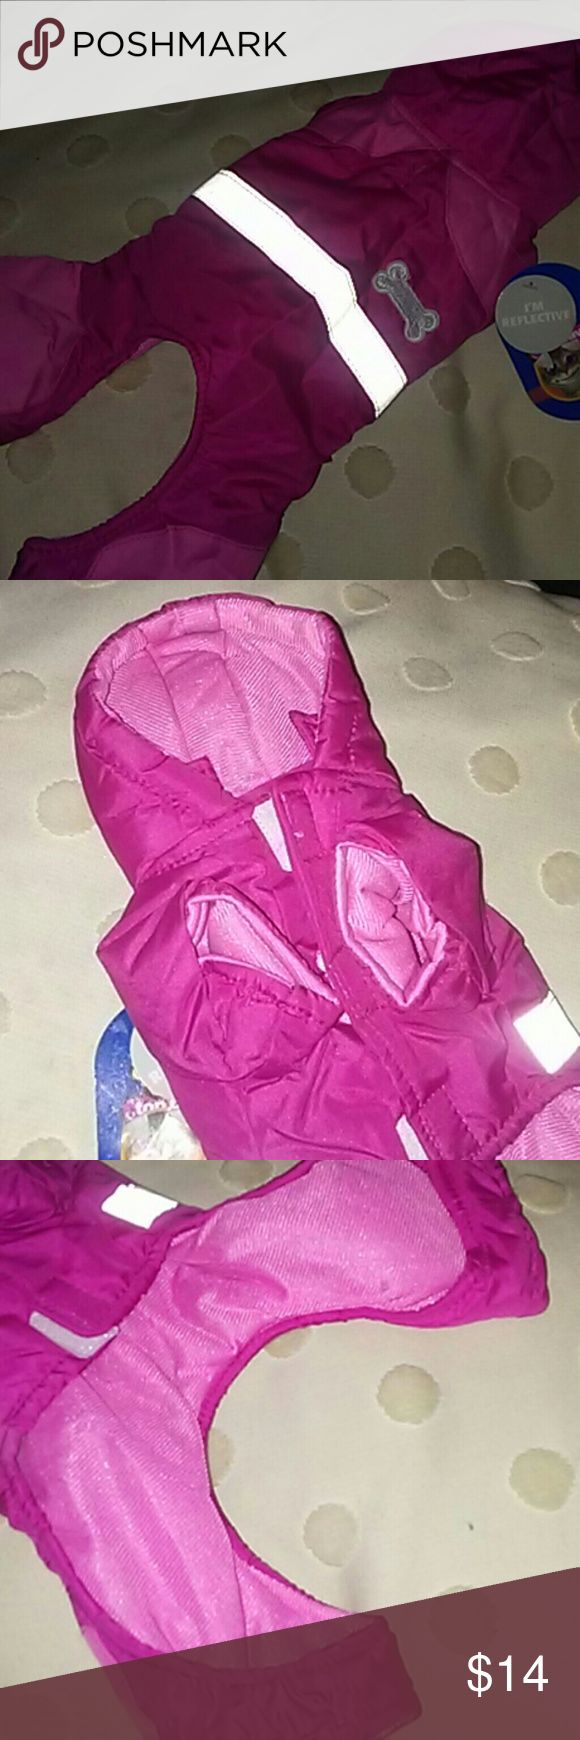 NWT Puppy/Pet Snowsuit/extra small New pink snowsuit. Reflective strip on back. Velcro closure. 100% polyester. Purchased for my dog and its too small. This is definitely an extra small. I have a yorkie poo and though she is a bit bigger than average its way too small. I would say its perfect for a Chihuahua or a toy or teacup dog. top paw One Pieces Bodysuits